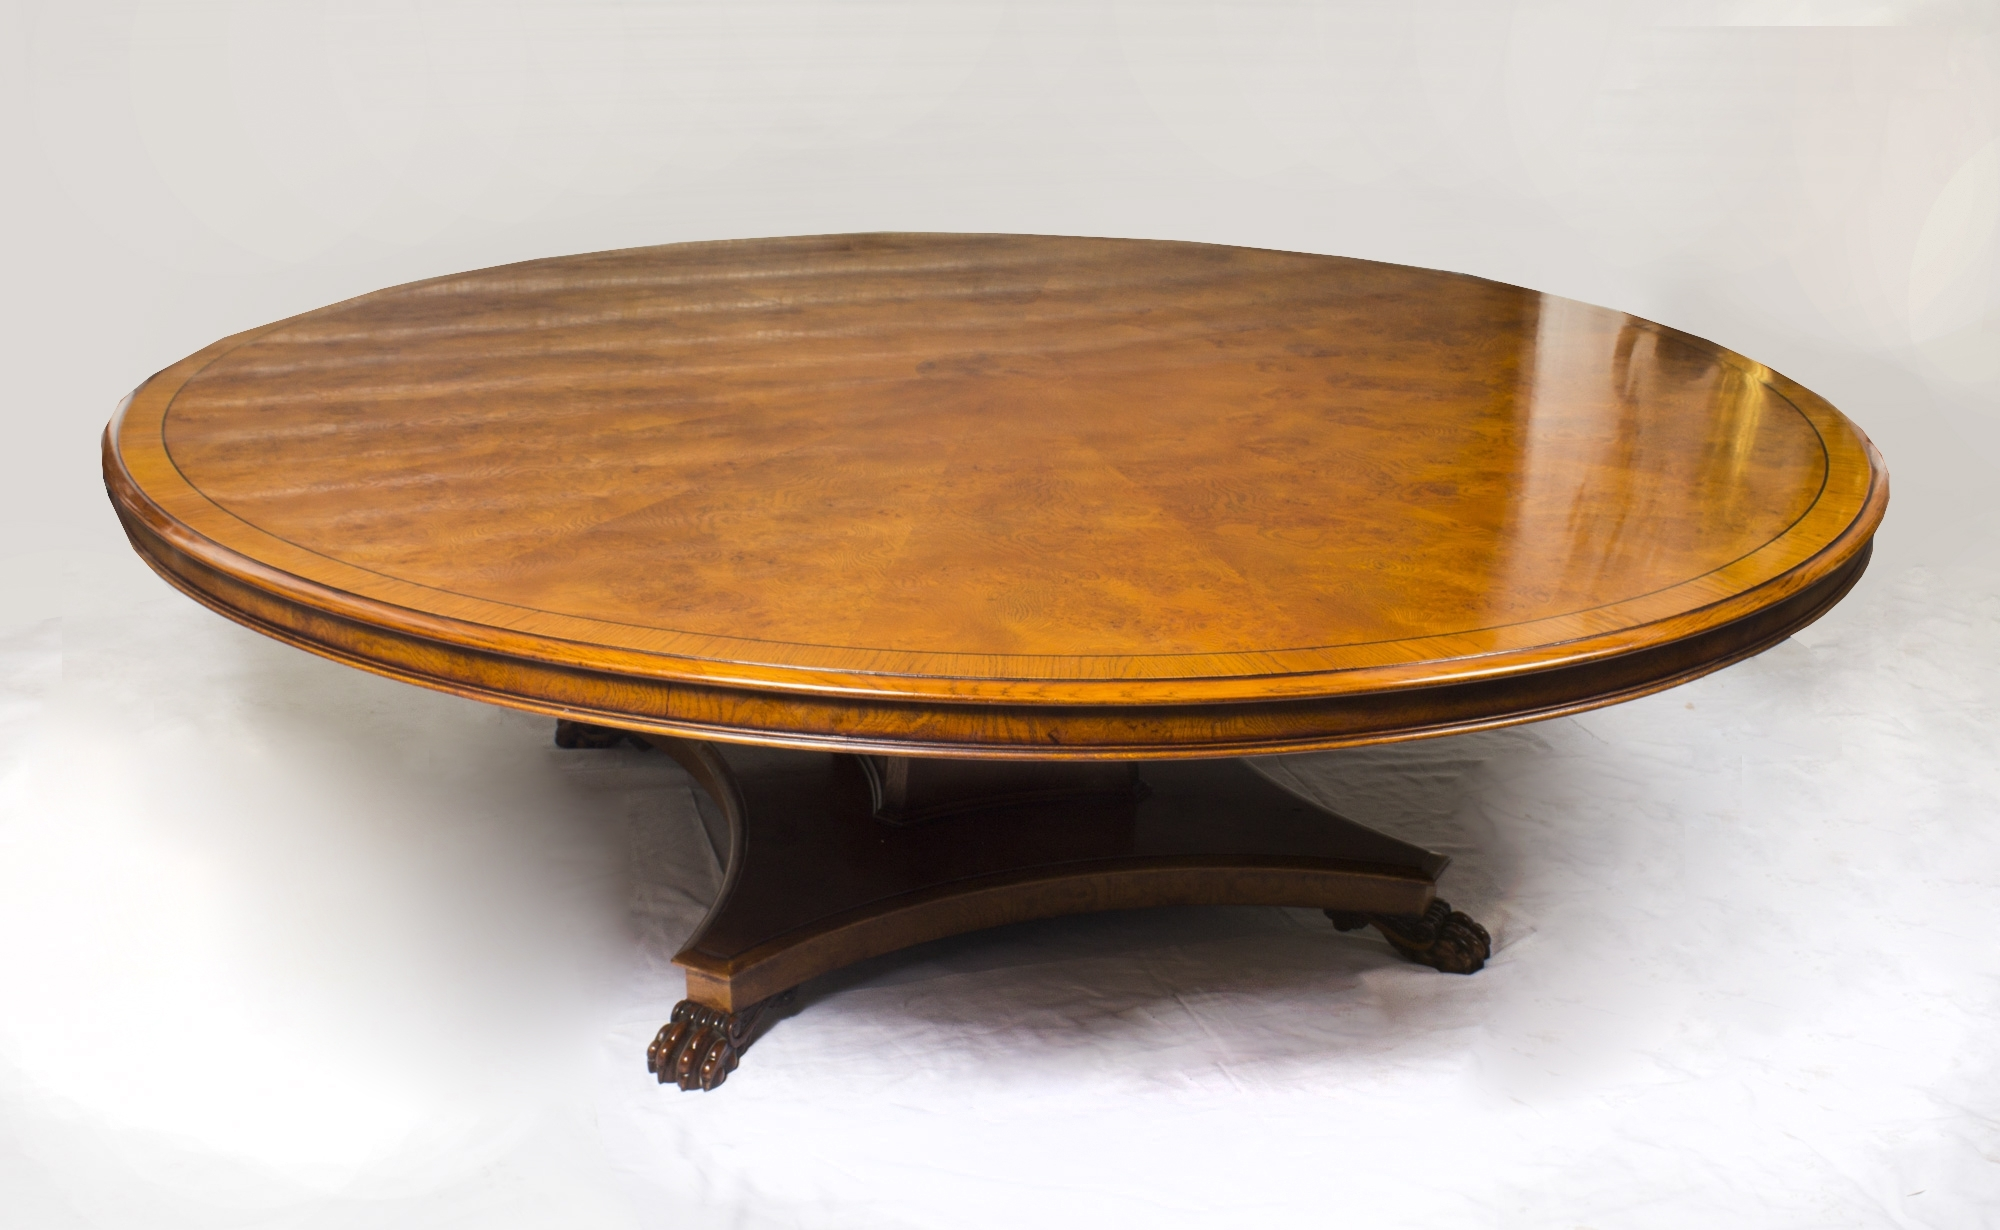 Circular Oak Dining Tables With Most Up To Date Vintage Regency Style 8Ft Round Pollard Oak Dining Table 20Thc (Gallery 24 of 25)